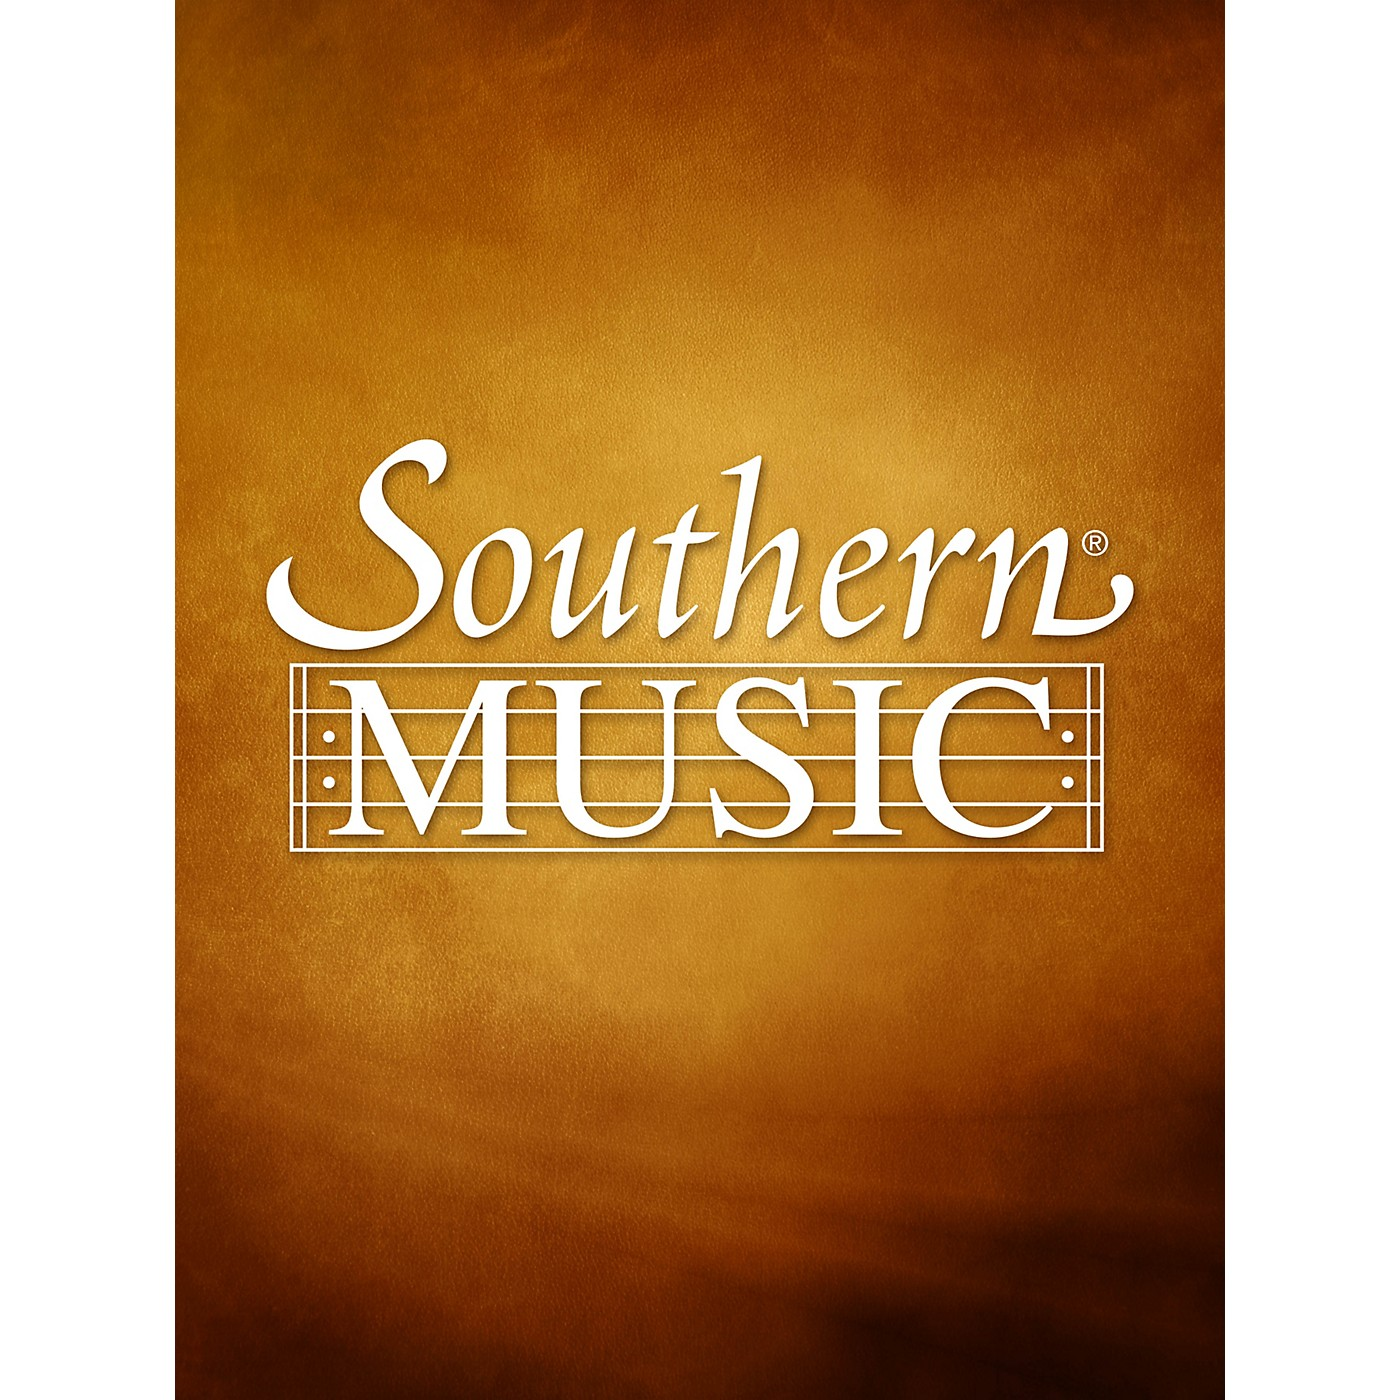 Southern Near Woodstock Town (Oversized Score) Concert Band Arranged by Ray E. Cramer thumbnail